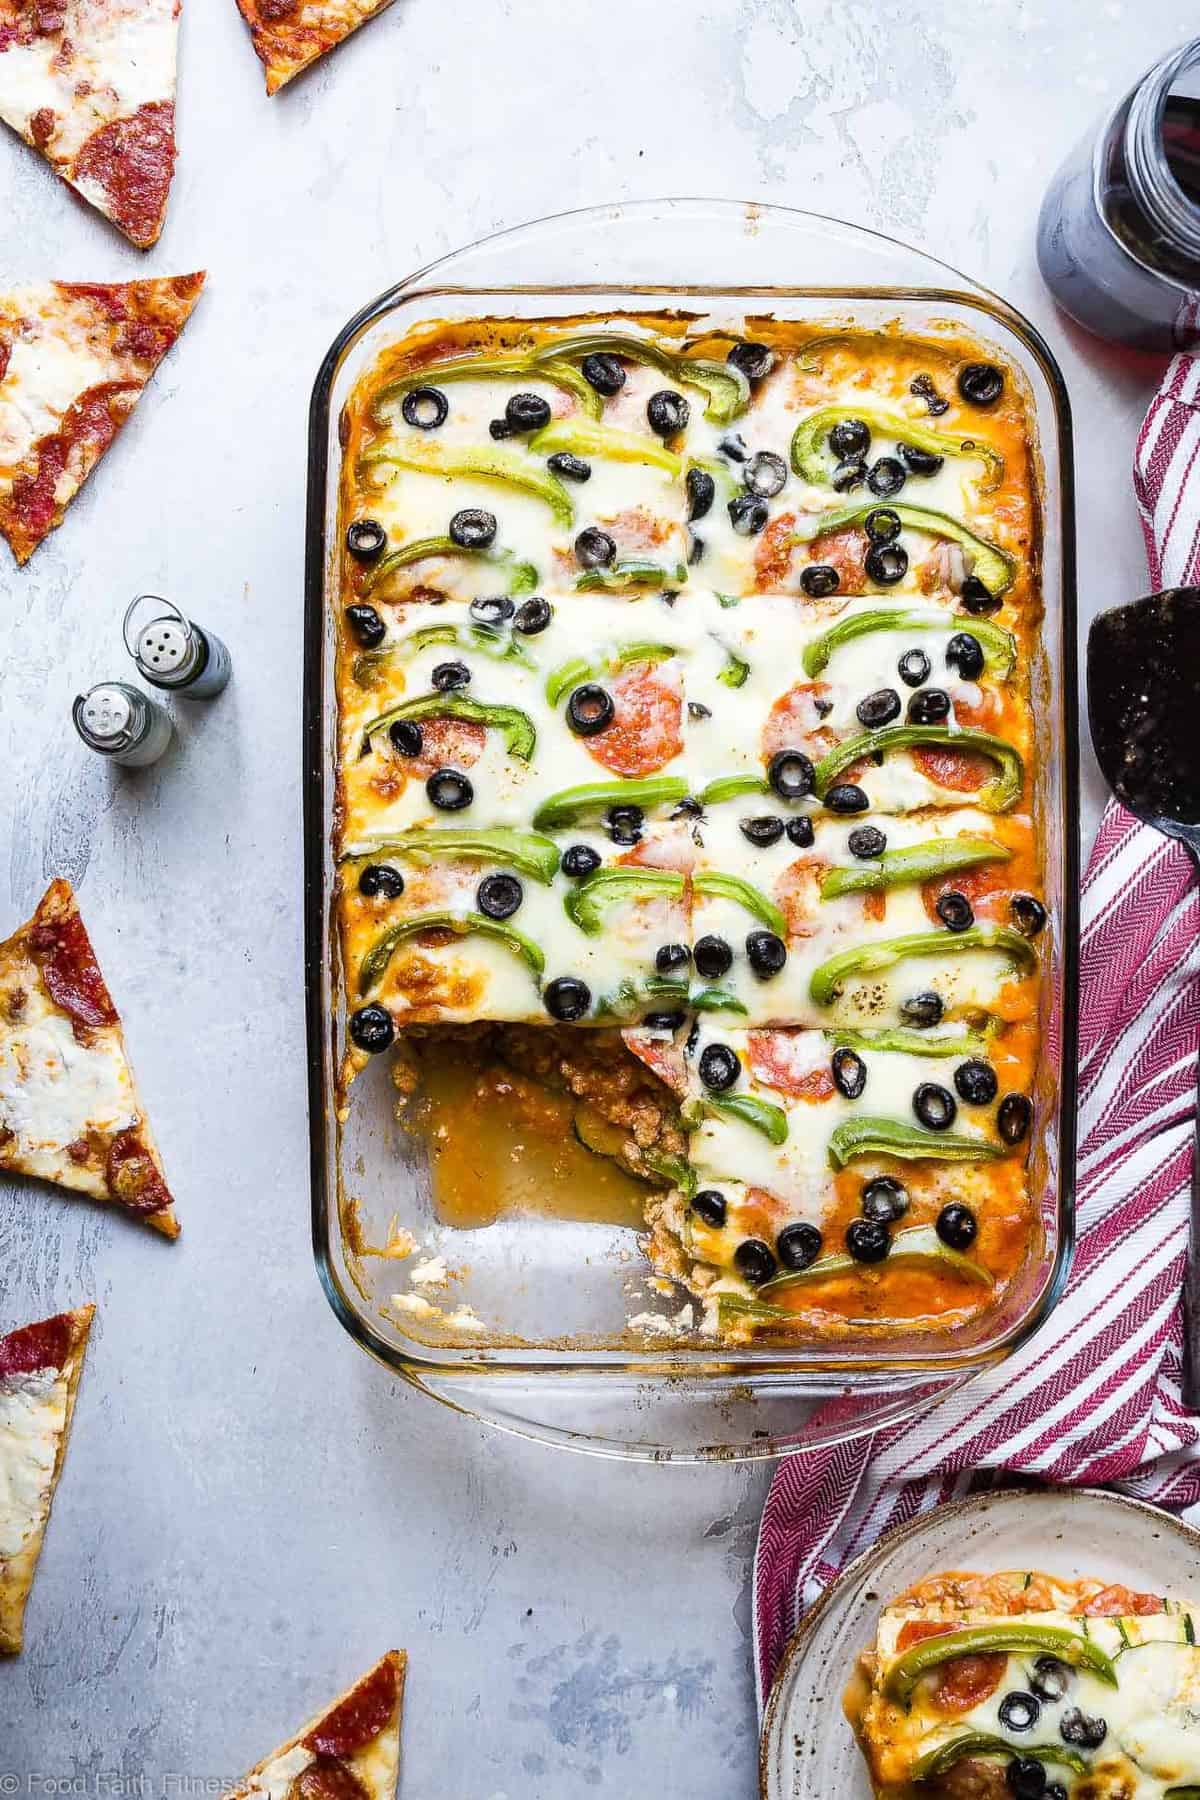 Low Carb Zucchini Pizza Lasagna -This zucchini lasagna combines 2 classic comfort foods into one healthy and kid friendly dinner! Gluten free, under 300 calories and packed with protein too! | #Foodfaithfitness.com | #Glutenfree #Lowcarb #Healthy #KidFriendly #Lasagna